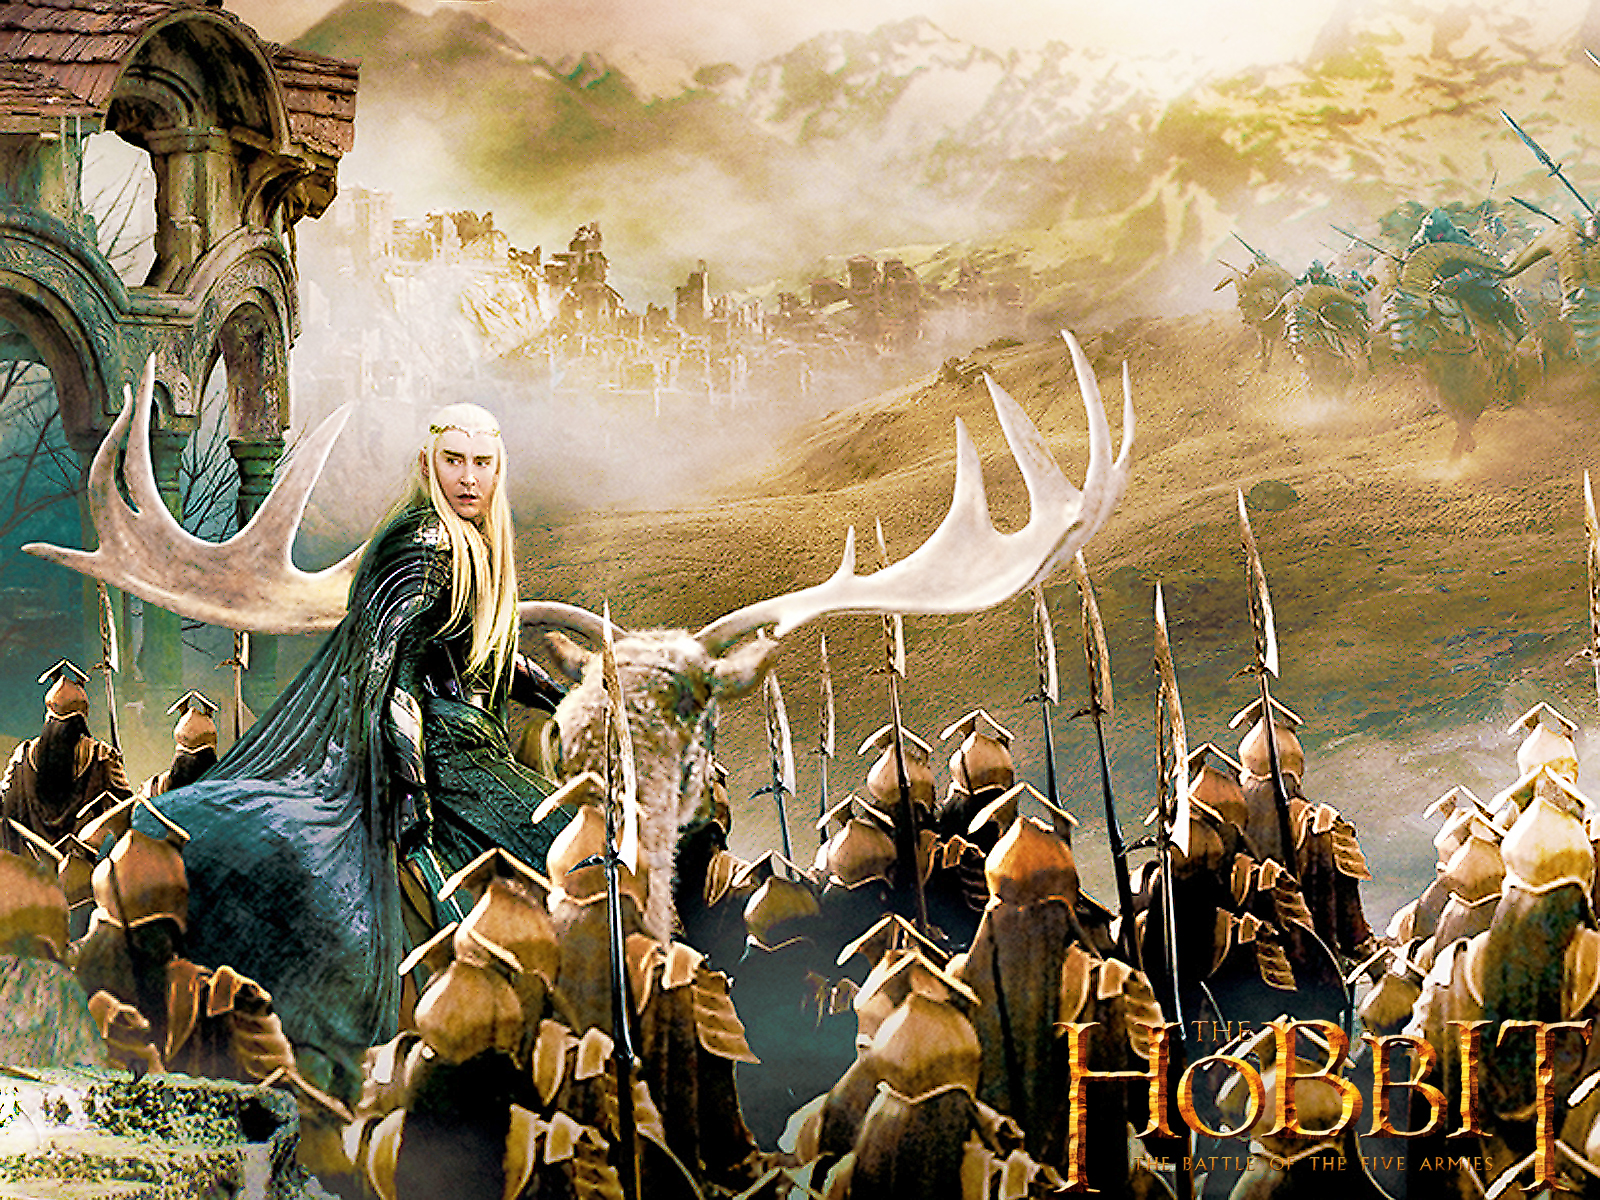 The Hobbit Images Battle Of Five Armies Wallpapers HD Wallpaper And Background Photos